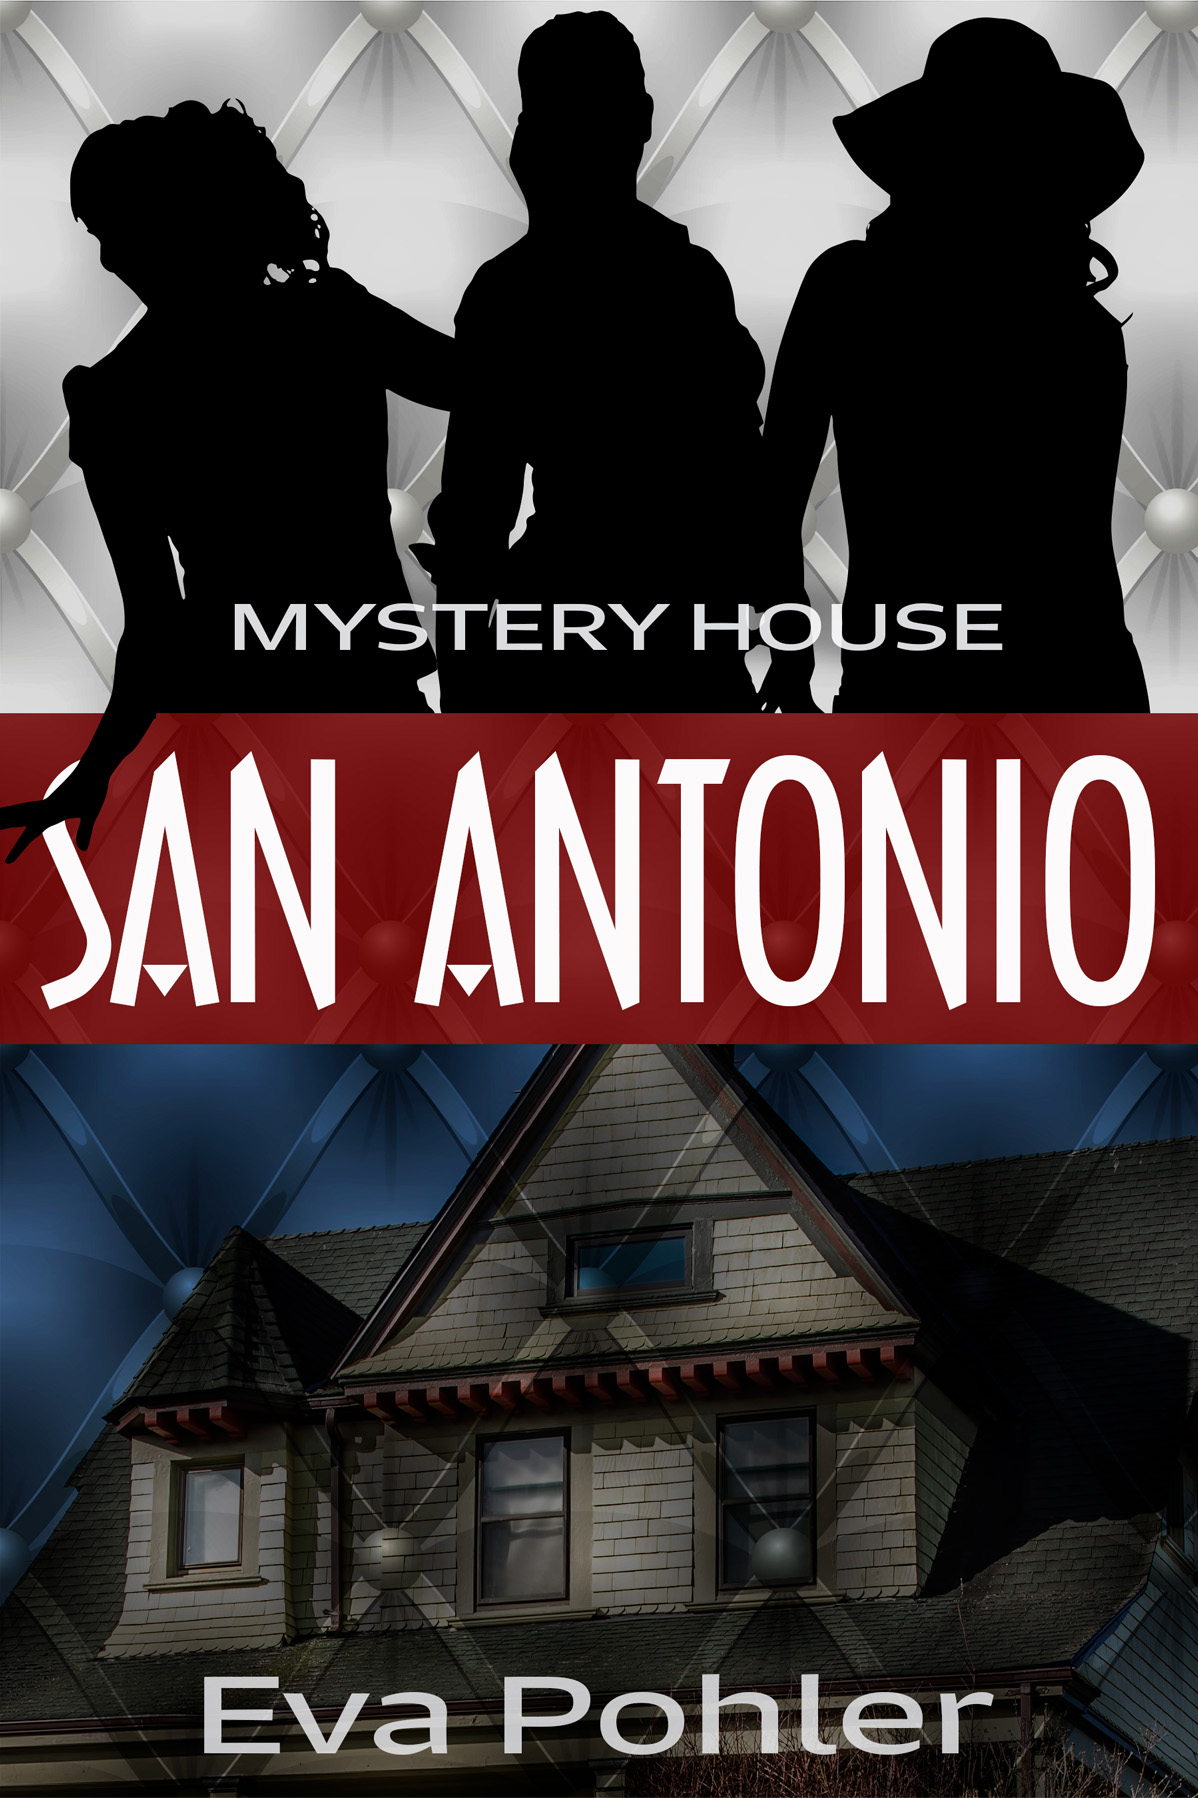 Mystery House San Antonio by Eva Pohler, cover by Book Cover Corner